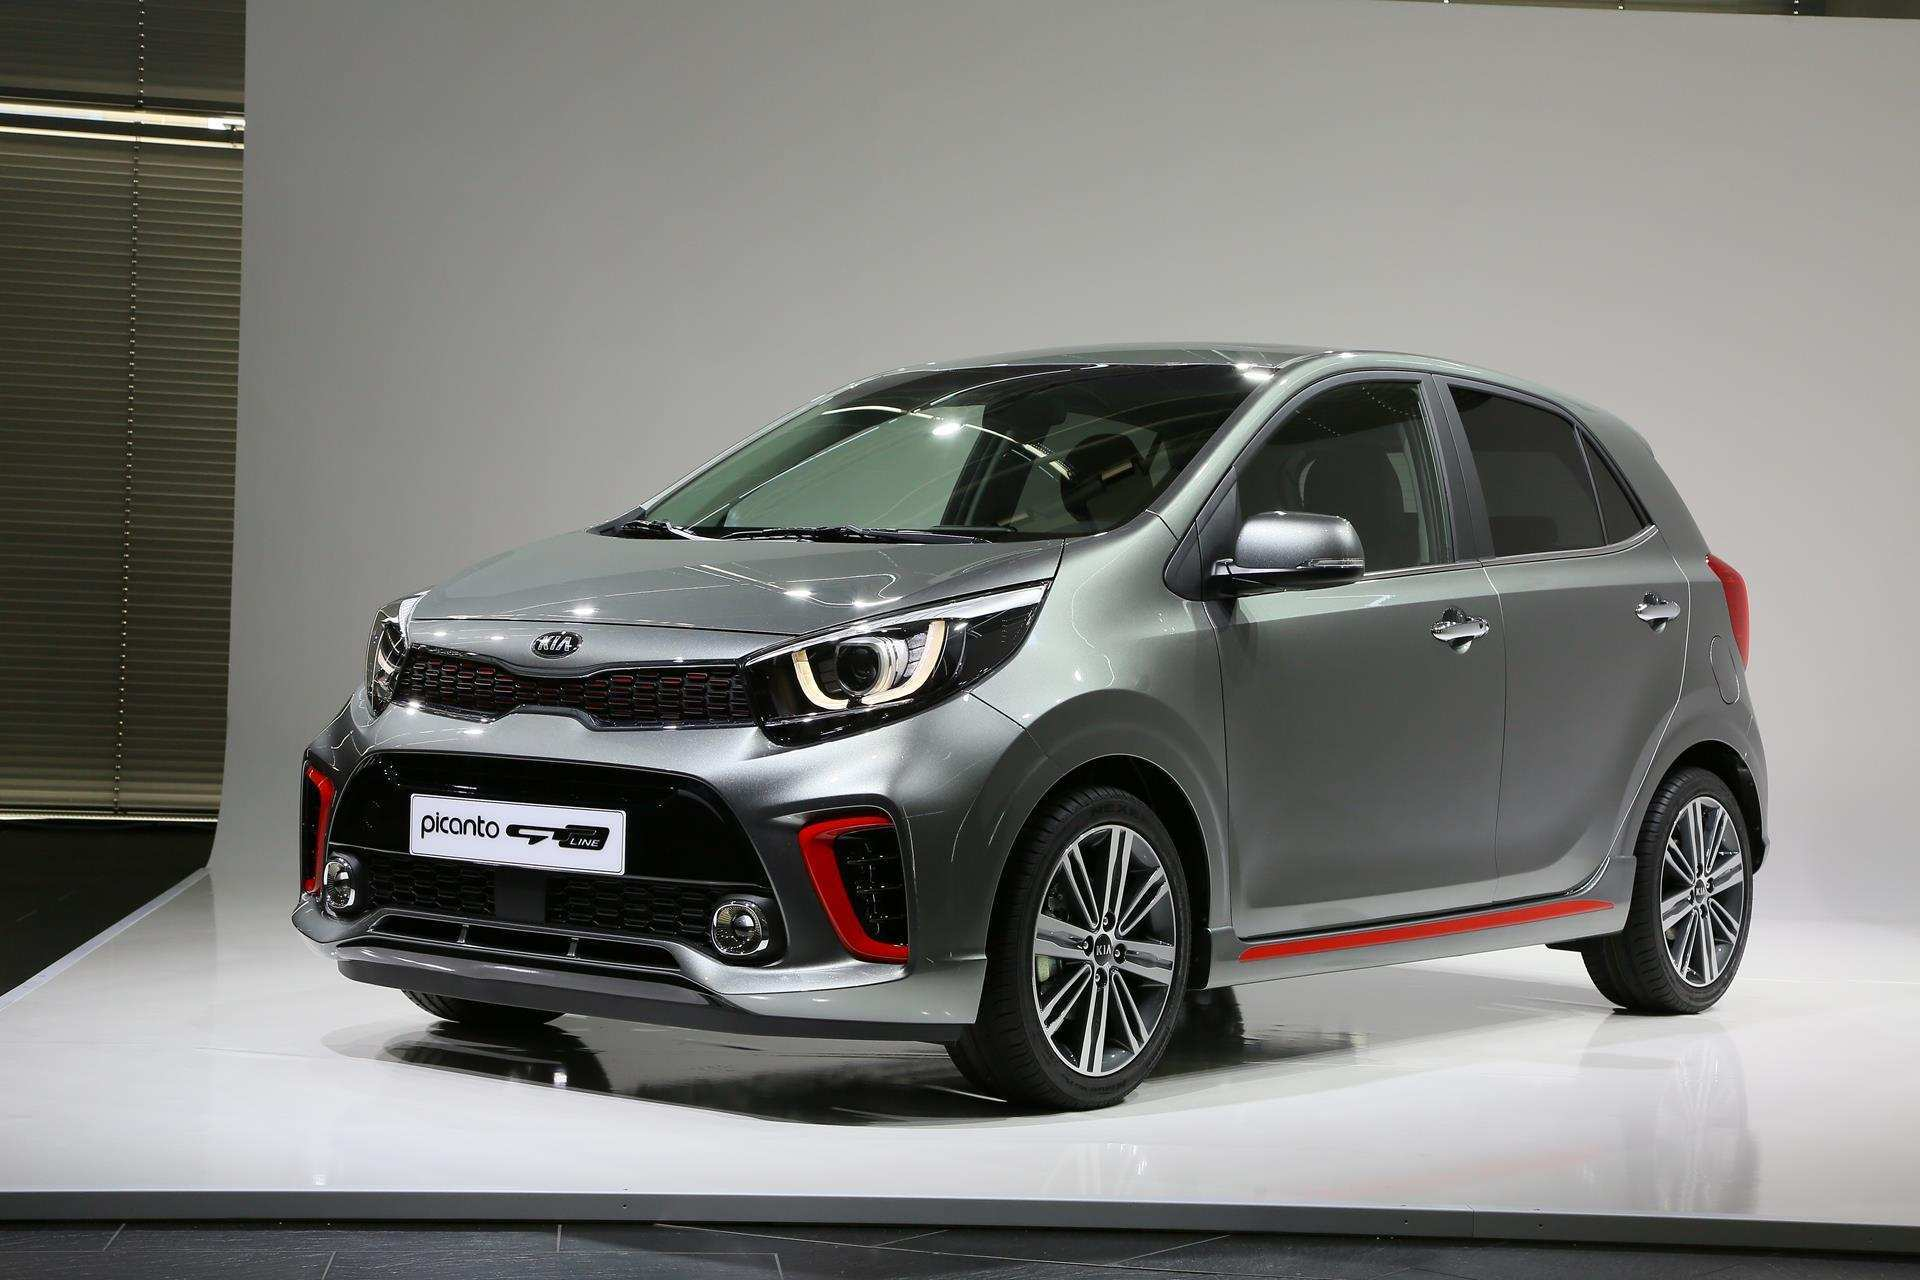 71 Gallery of Kia Picanto Gt Line 2020 First Drive with Kia Picanto Gt Line 2020